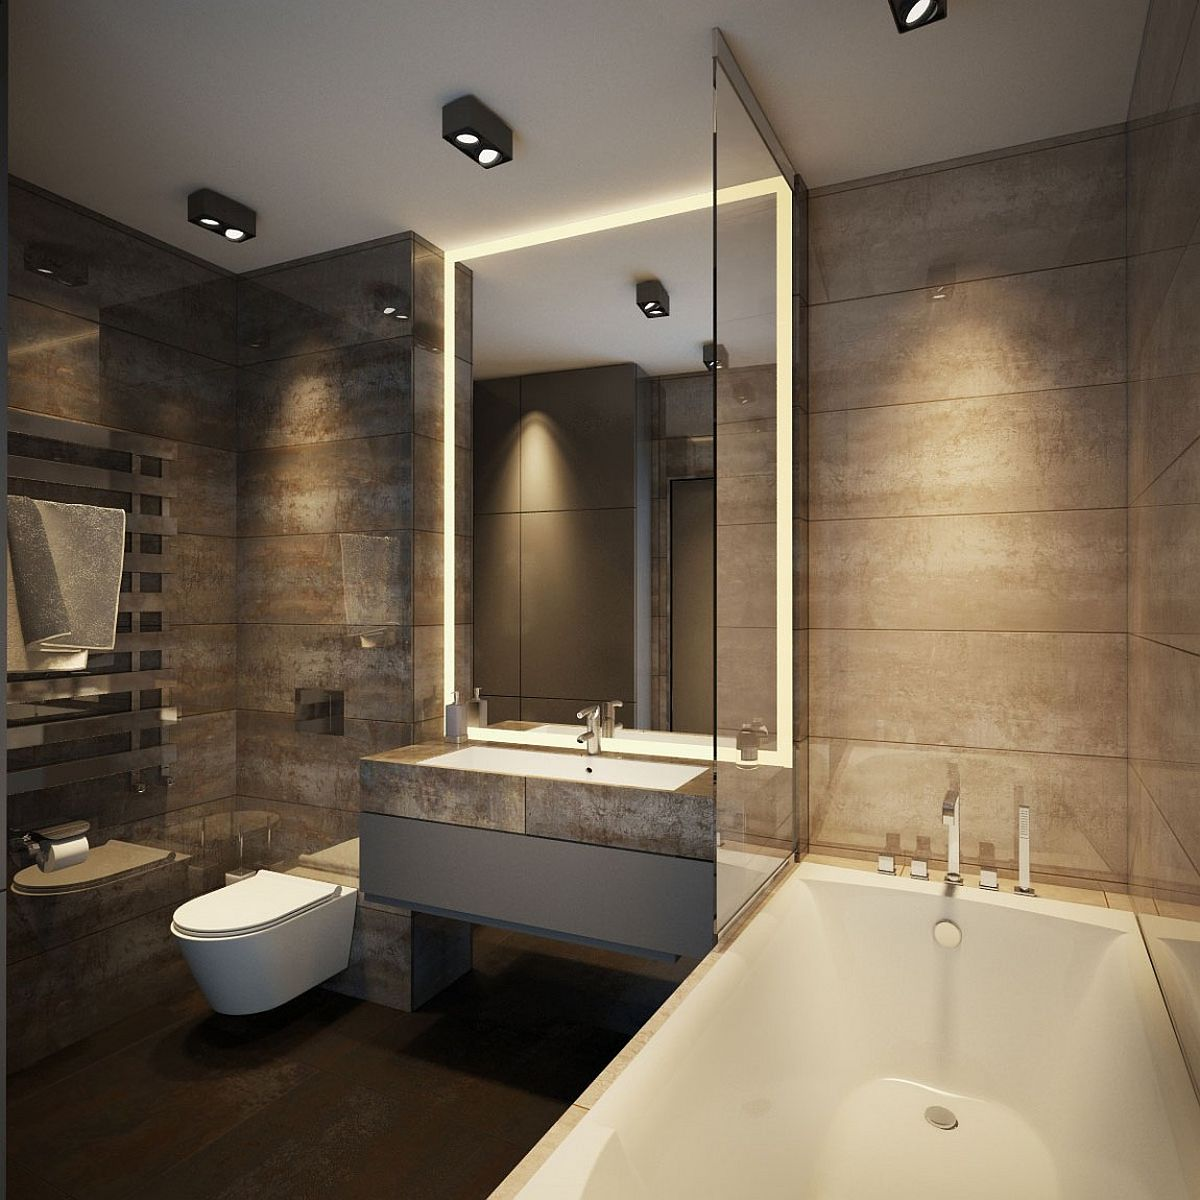 Apartment ernst in kiev inspired by posh hotel ambiance for Bathroom lighting design